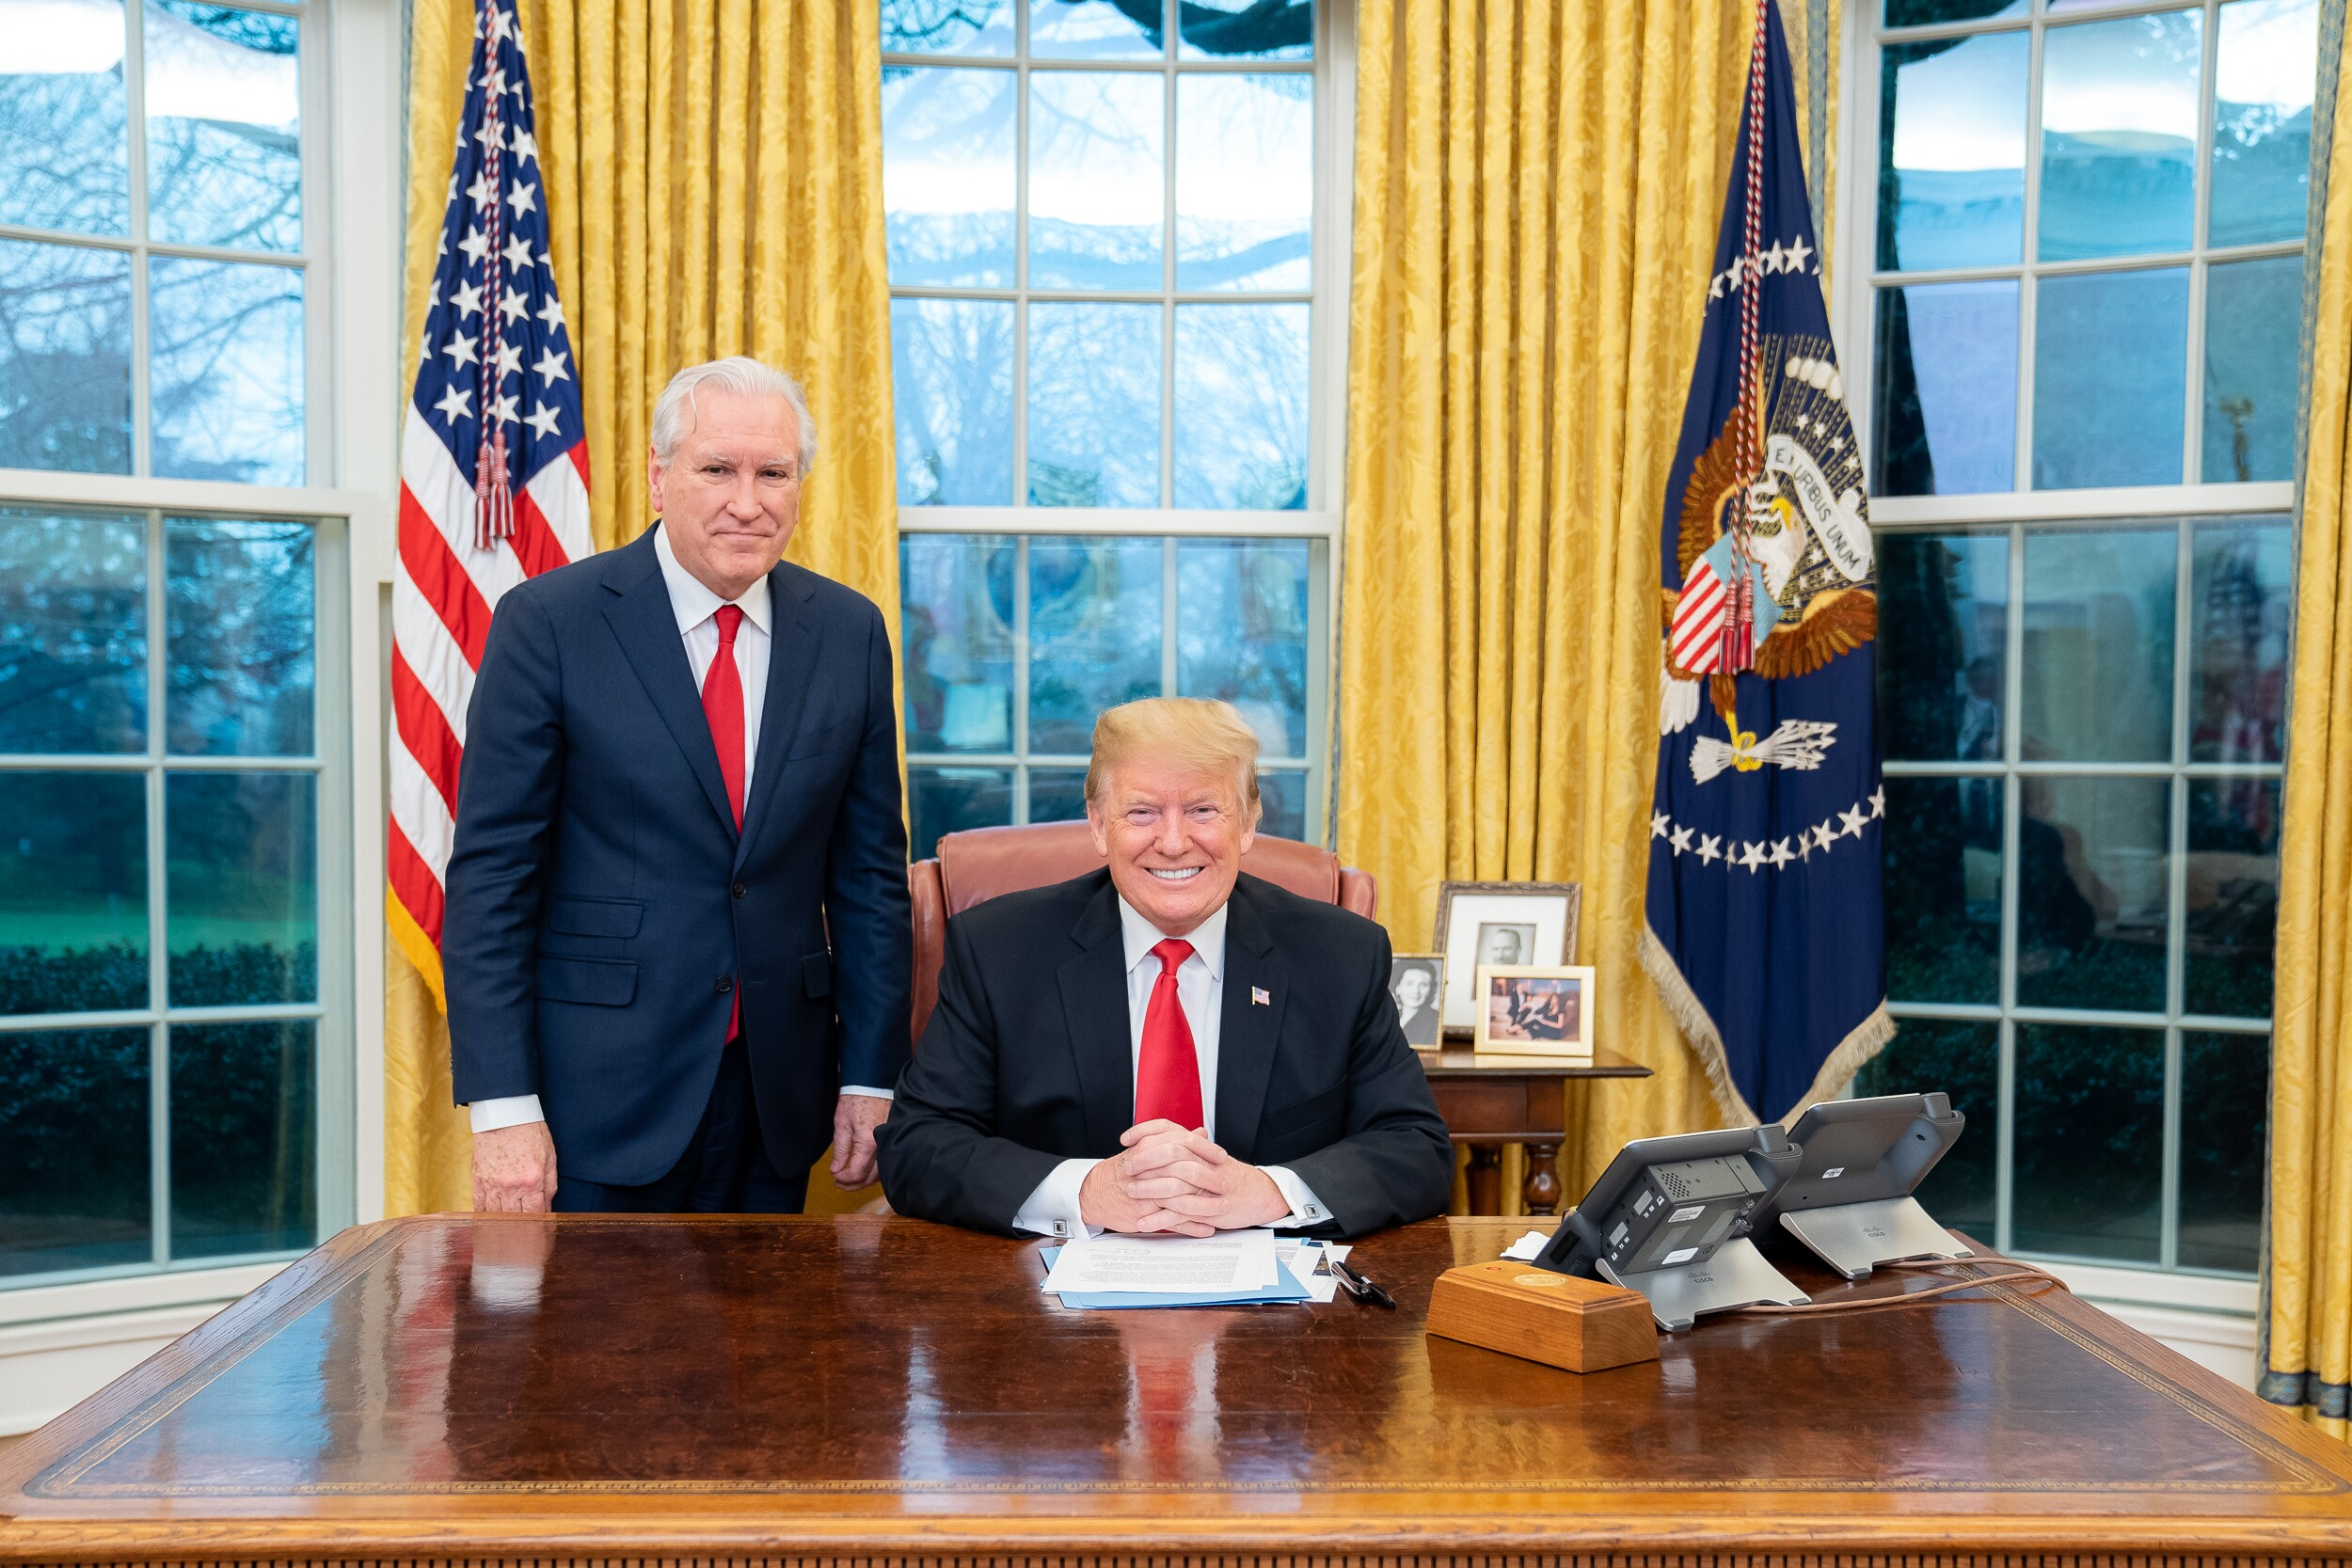 President Trump (seated) meets with Doug Wead in the Oval Office of the White House. Wead provided the photo to Secrets.